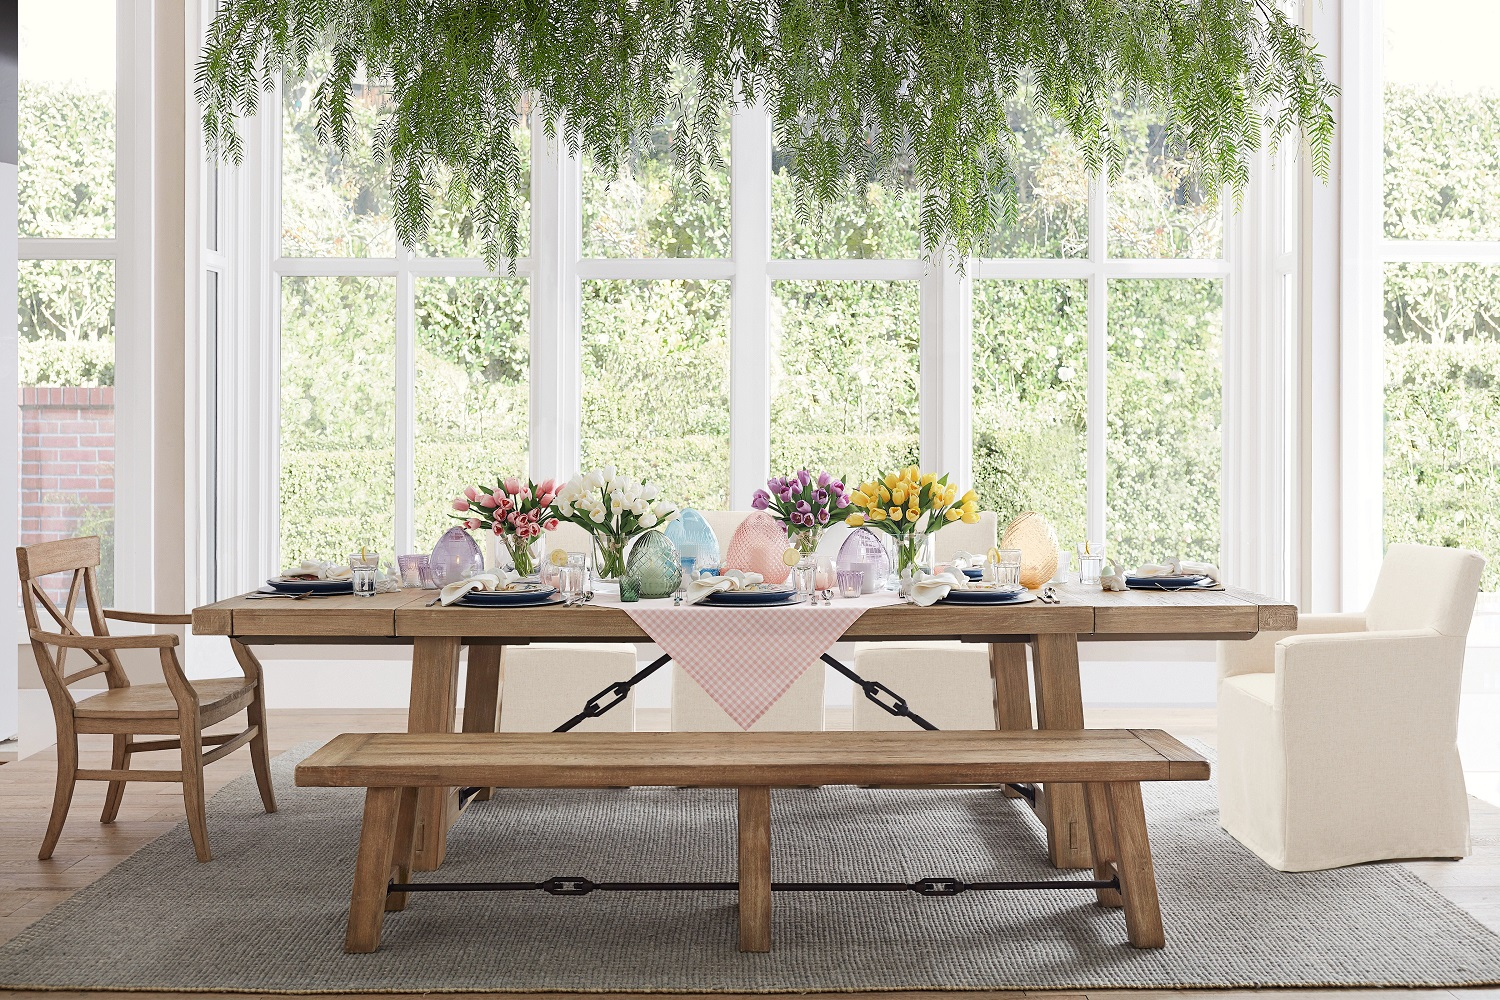 Layer a beautiful table with a few new touches for spring such as these bundles of tulips in glass vases and pastel blown glass eggs filled with strings of lights or votive candles. Shown: rustic, industrial-styled Benchwright dining table. Photo: Pottery Barn